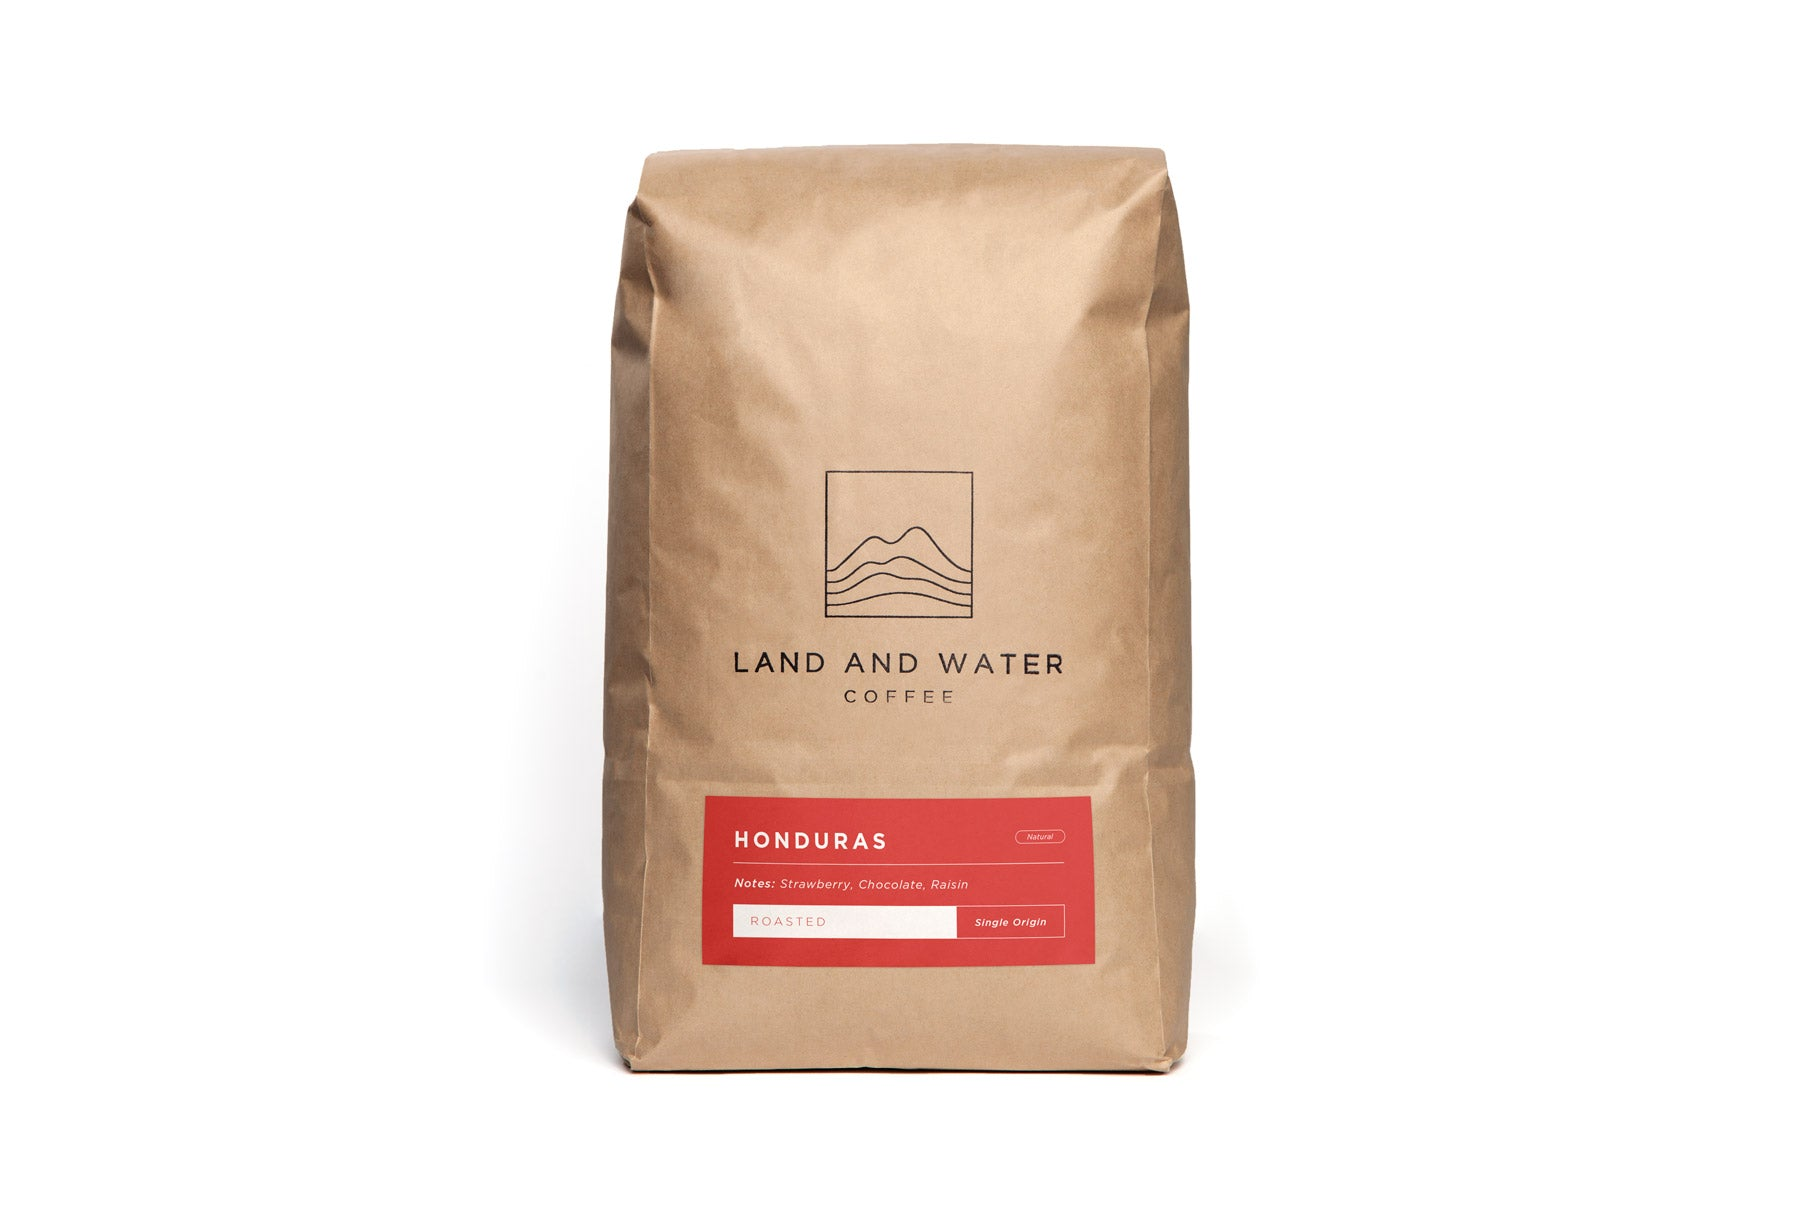 Land and Water Coffee Finca Los Naranjos, Copan Honduras, White Bag with red label on a red background